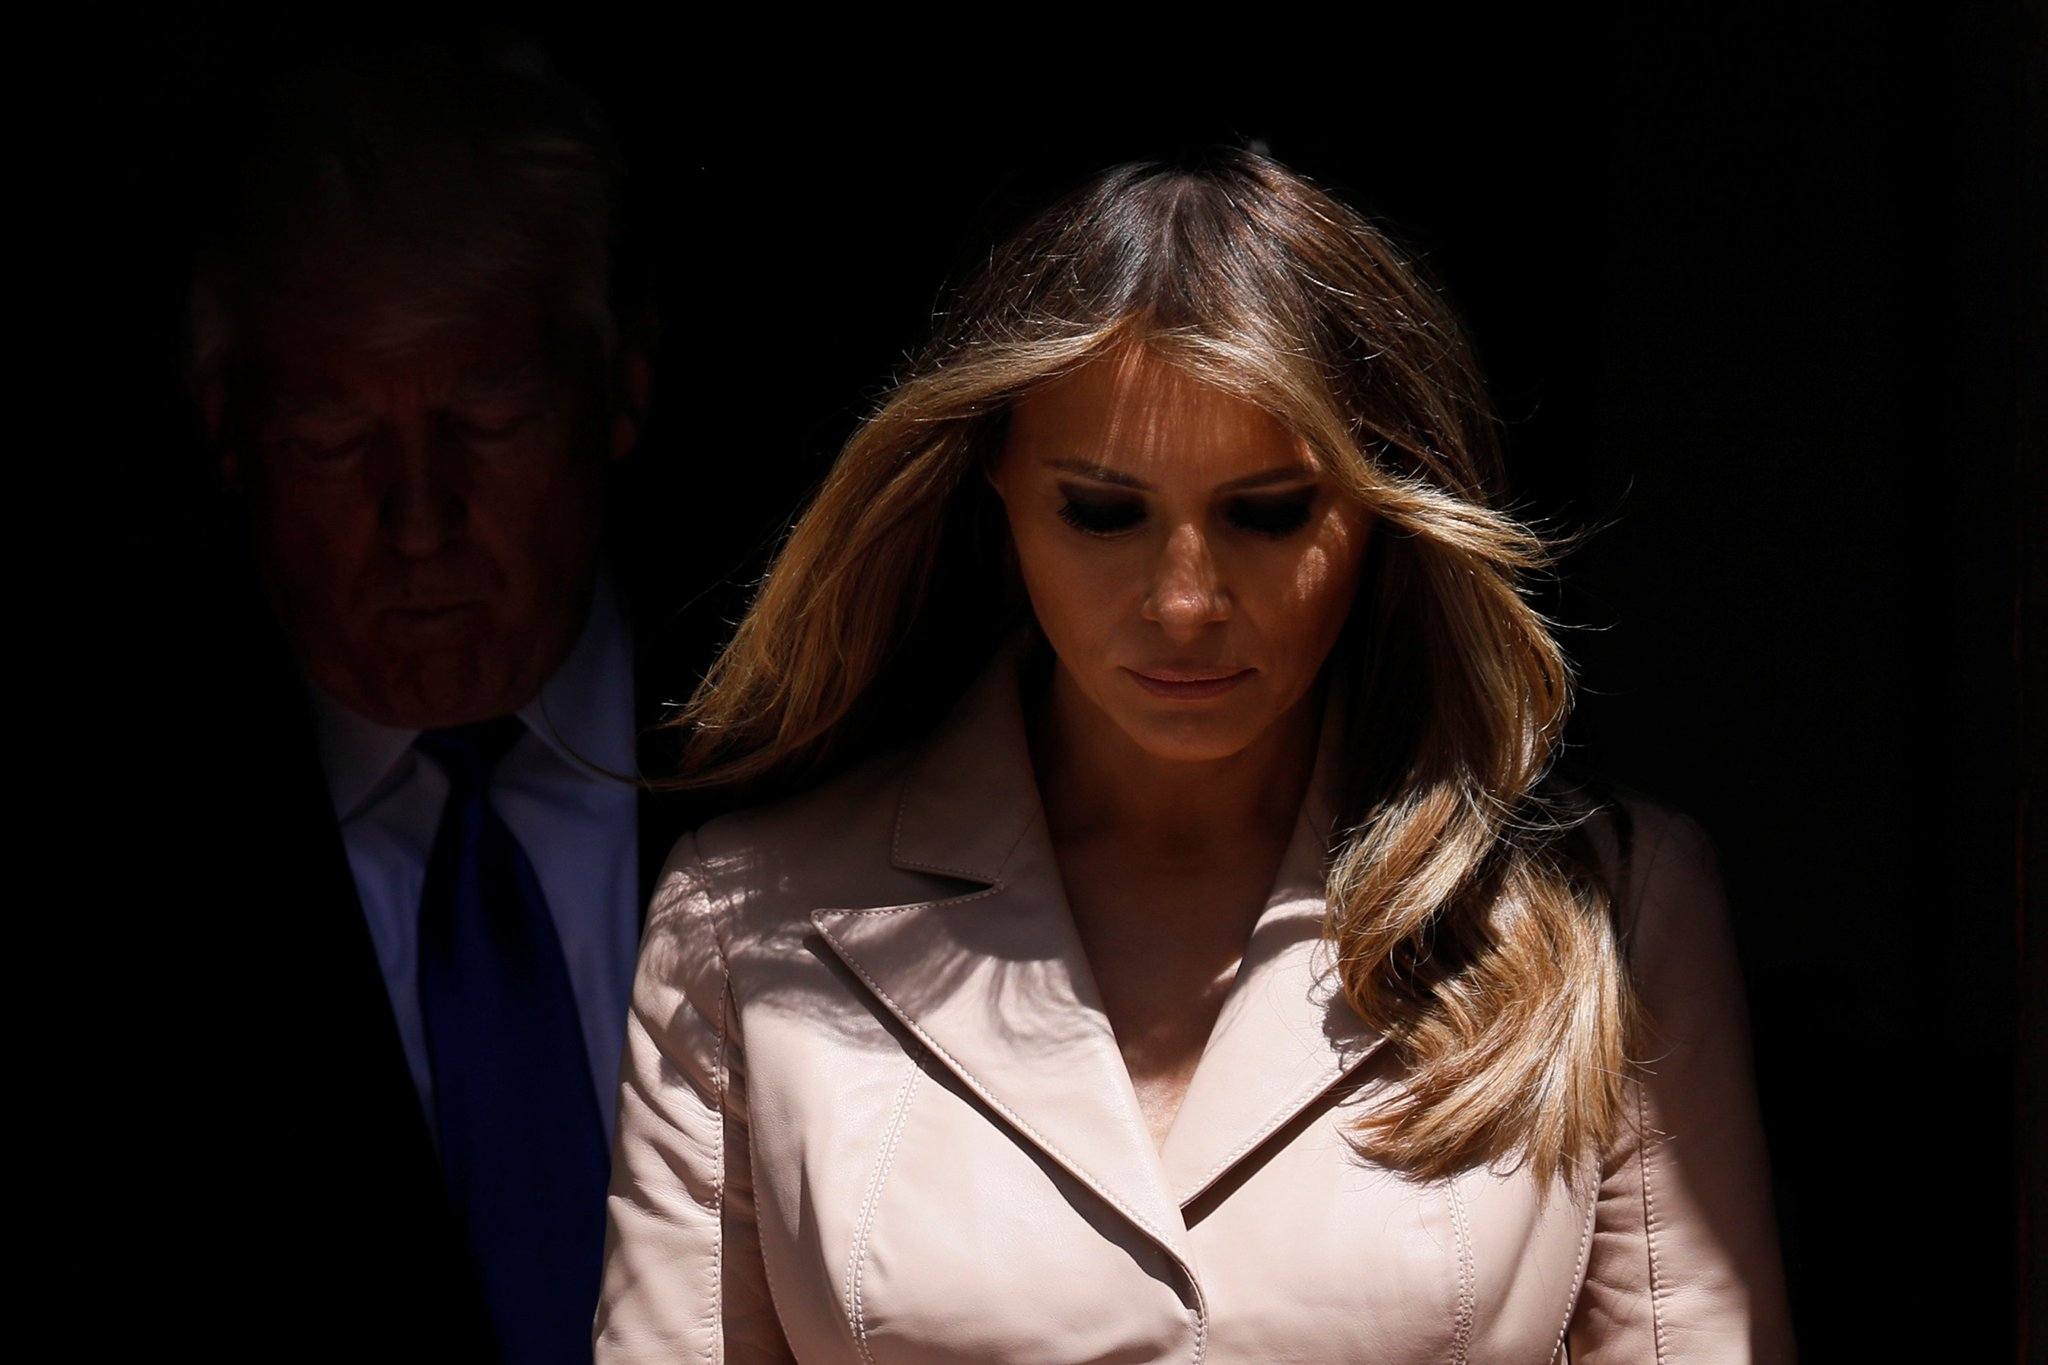 Melania Trump m ə ˈ l ɑː n i ə born Melanija Knavs mɛˈlaːnija ˈknaːus Germanized to Melania Knauss born April 26 1970 is a SlovenianAmerican